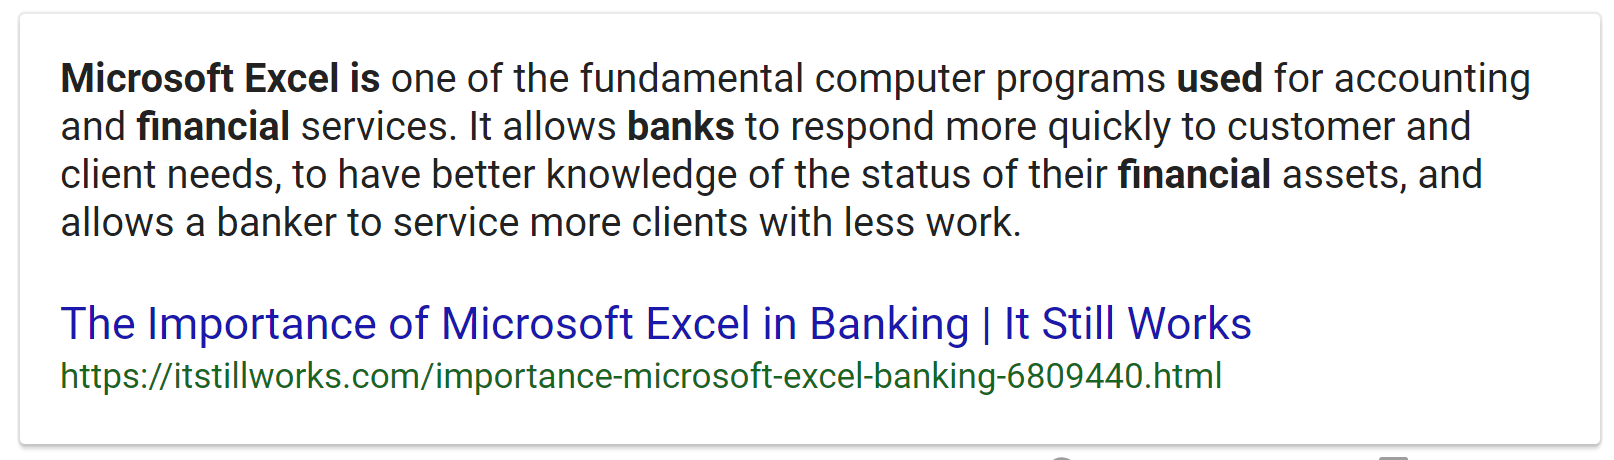 Microsoft Excel for the Accounting Industry